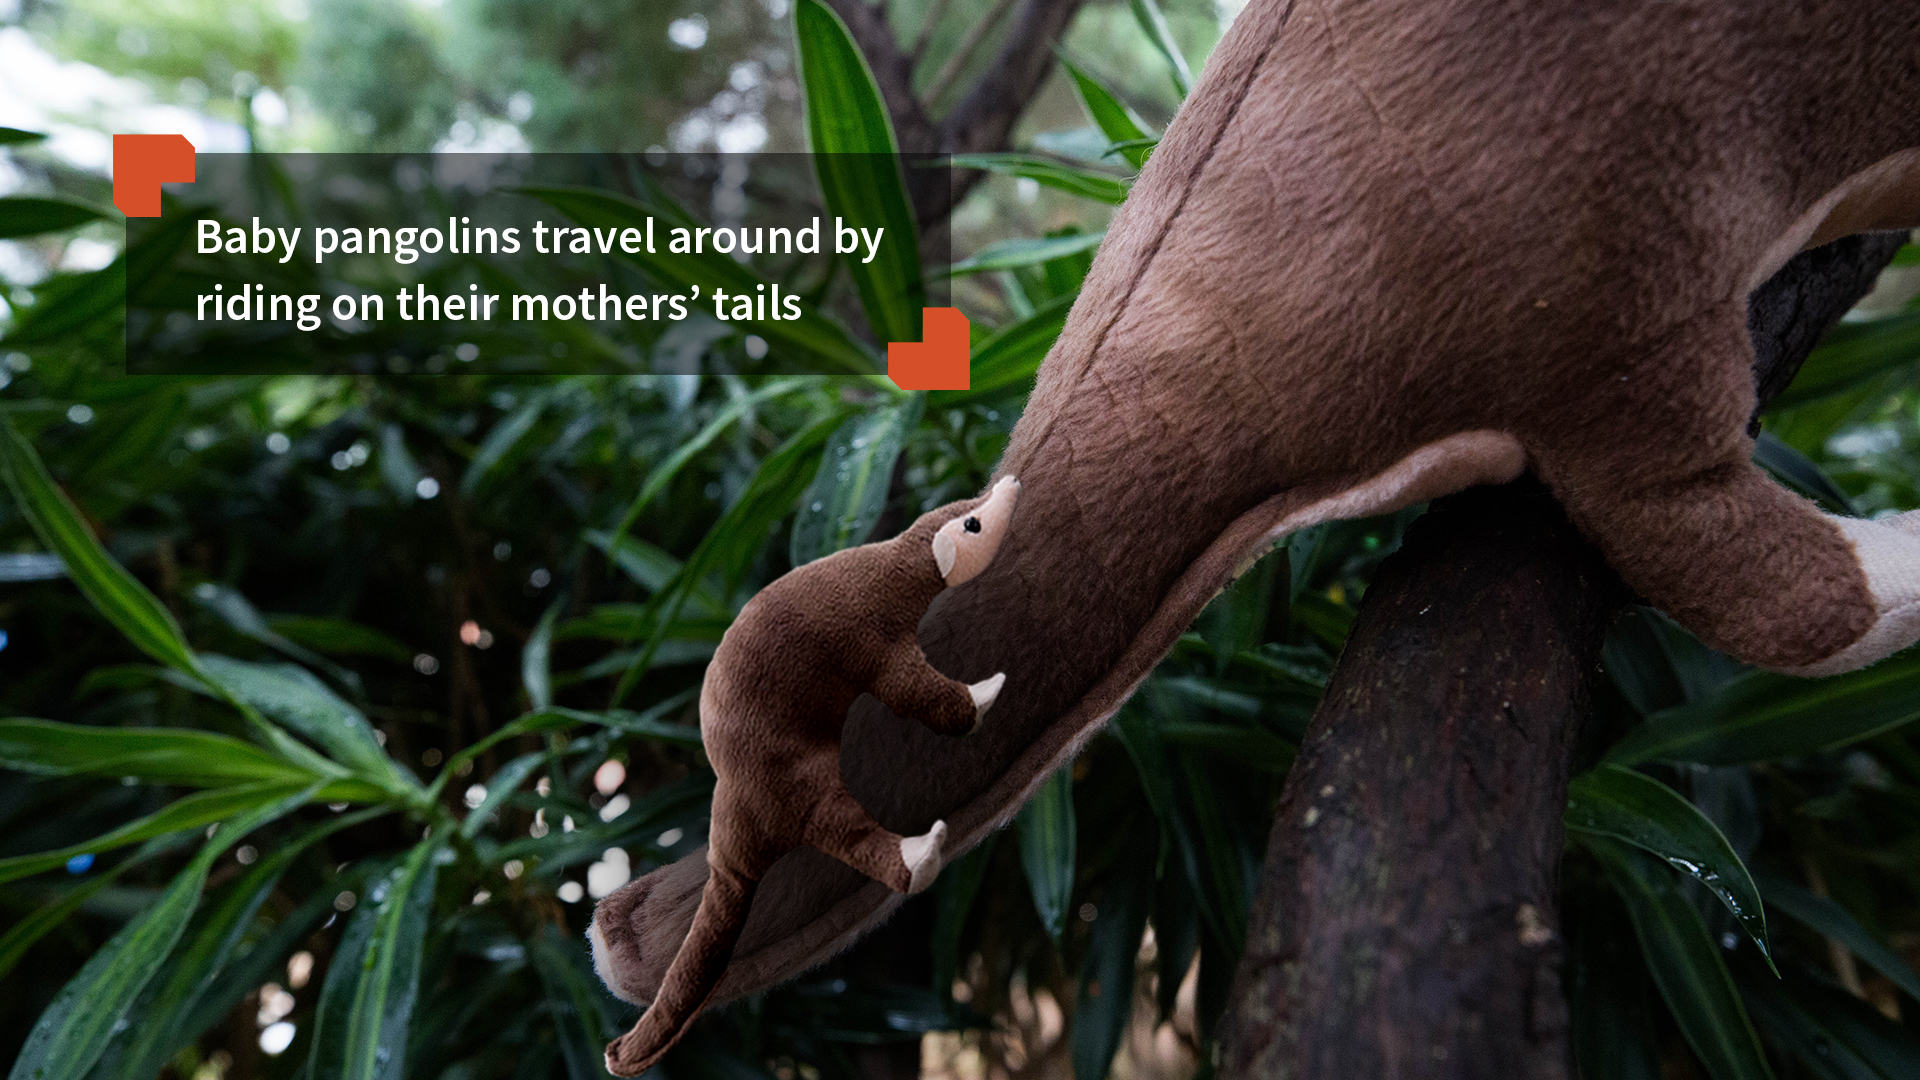 Baby pangolins travel around by riding on their mothers' tails